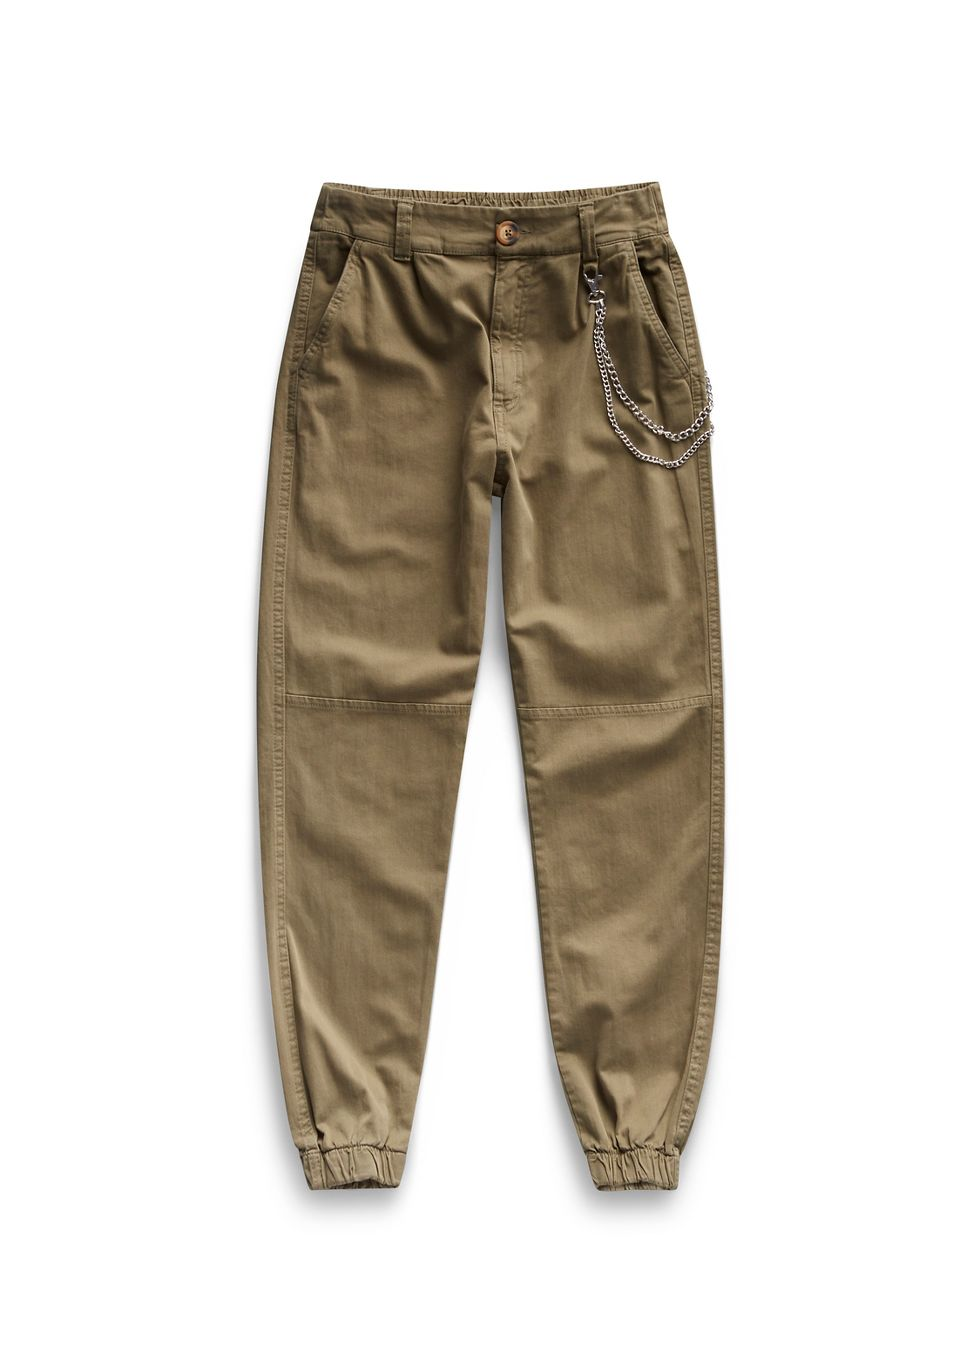 Chain Cargo Pants | The Sting